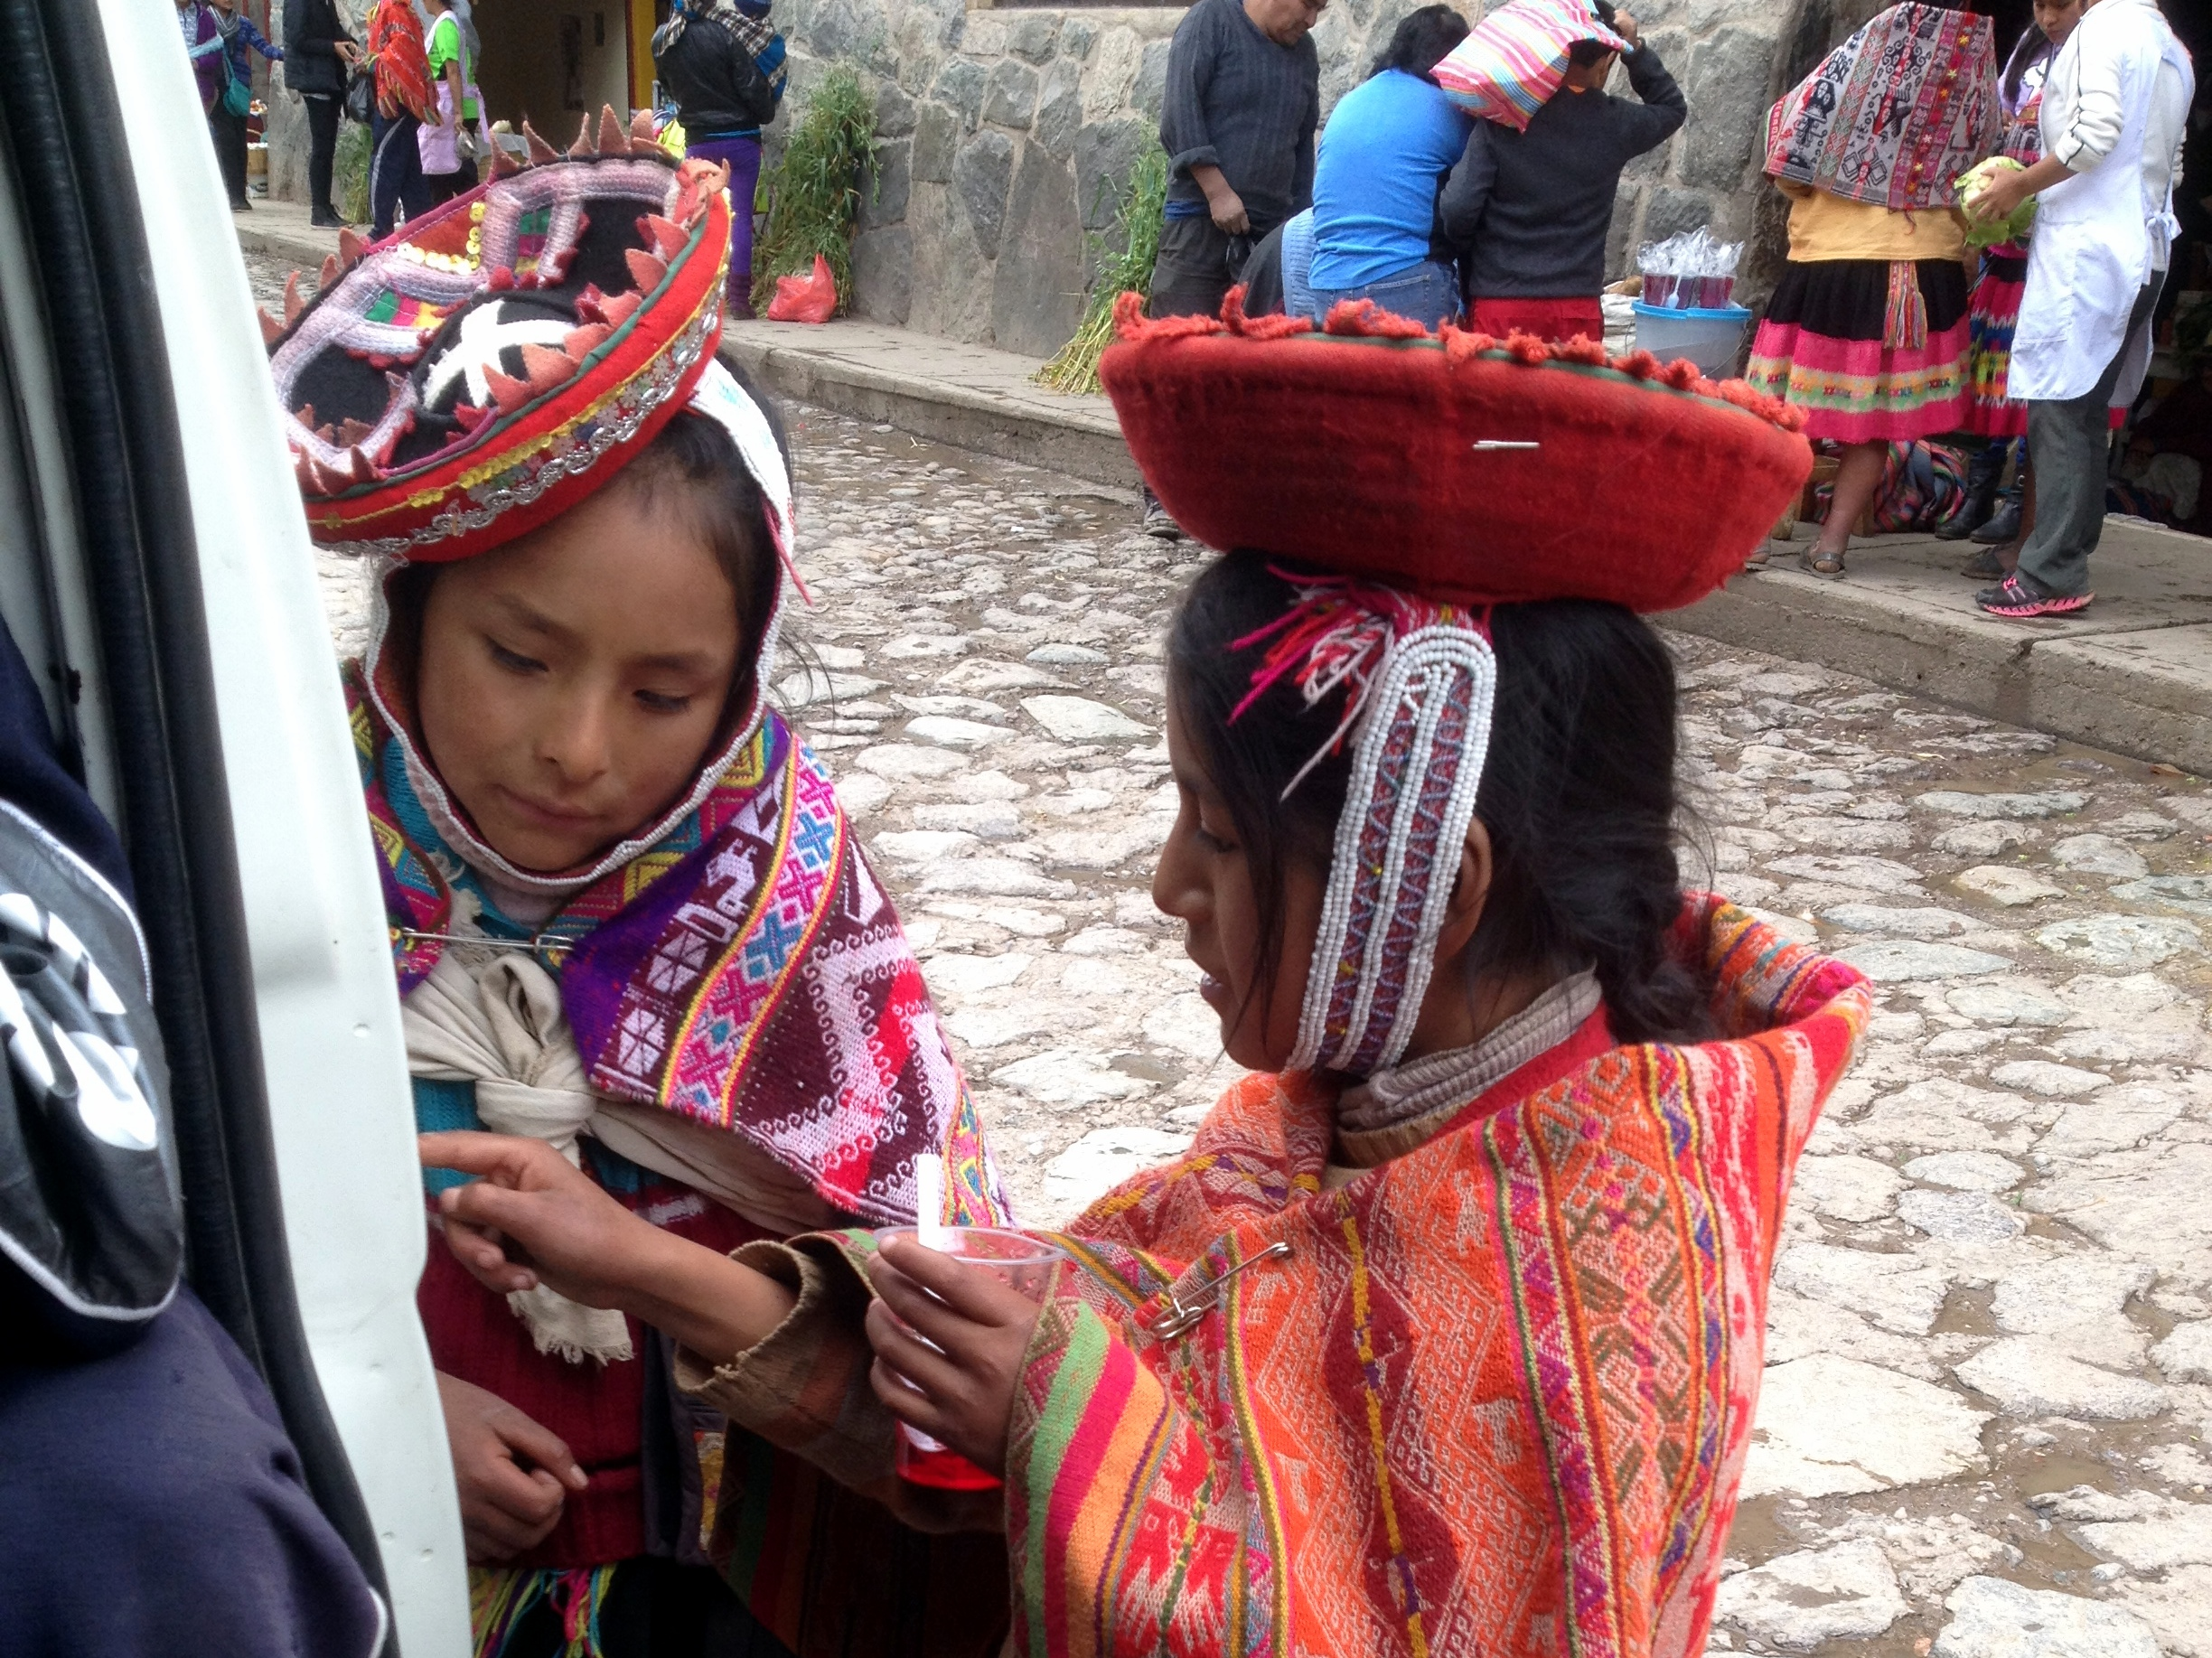 Quechua speaking girls